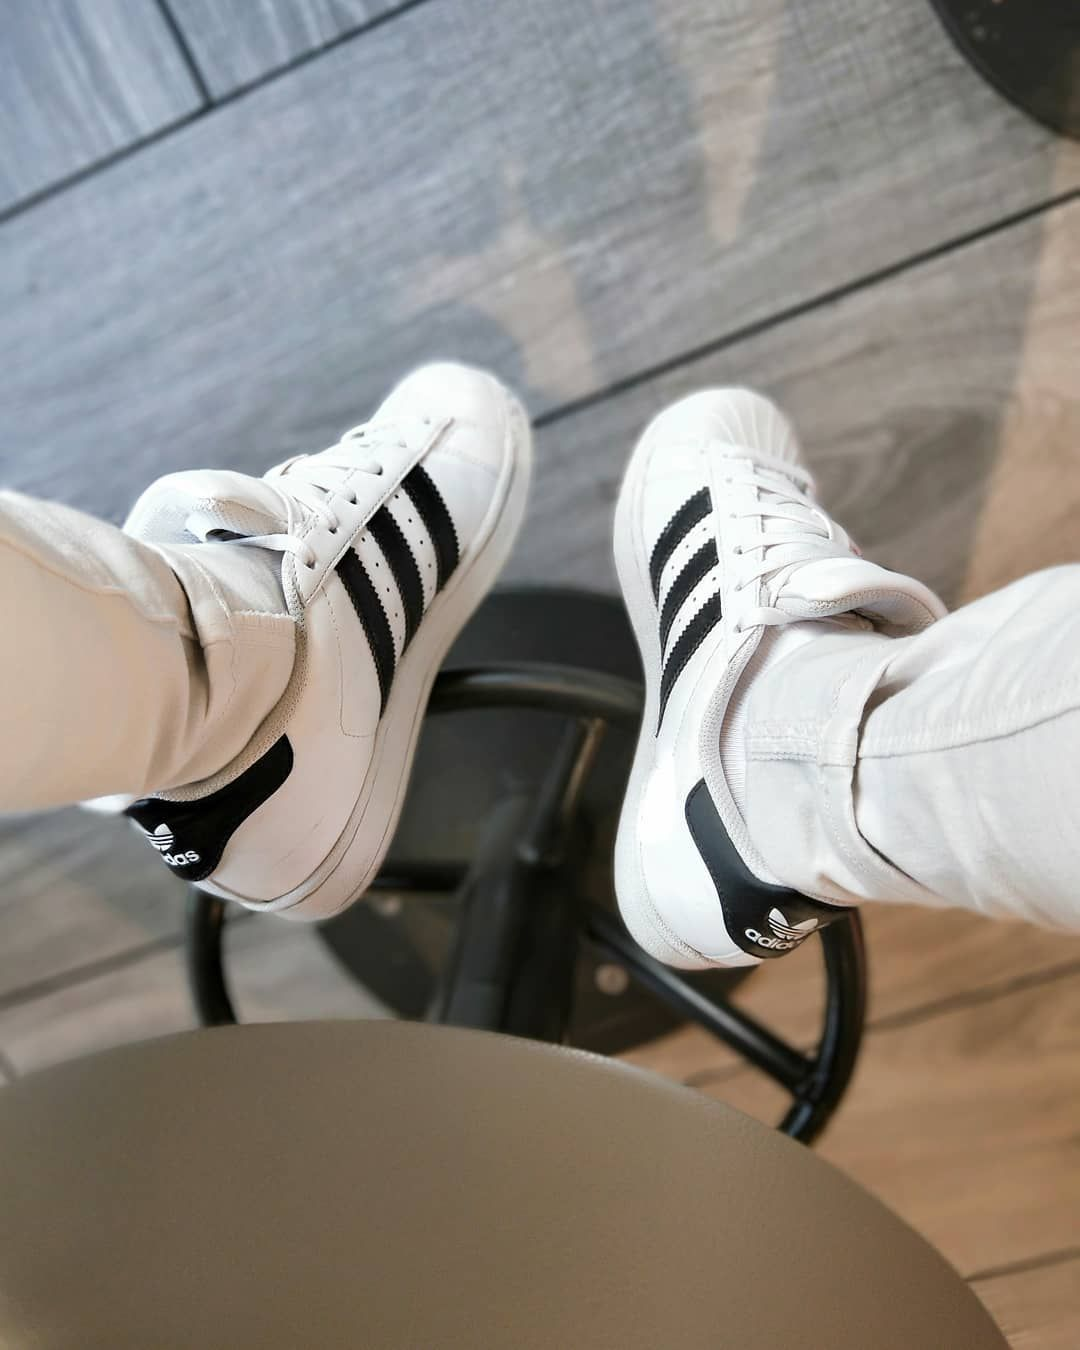 head & foots . . . #legs #fromwhereistand #adidas #chill #instalike #fitness #instagood #traveler #w...